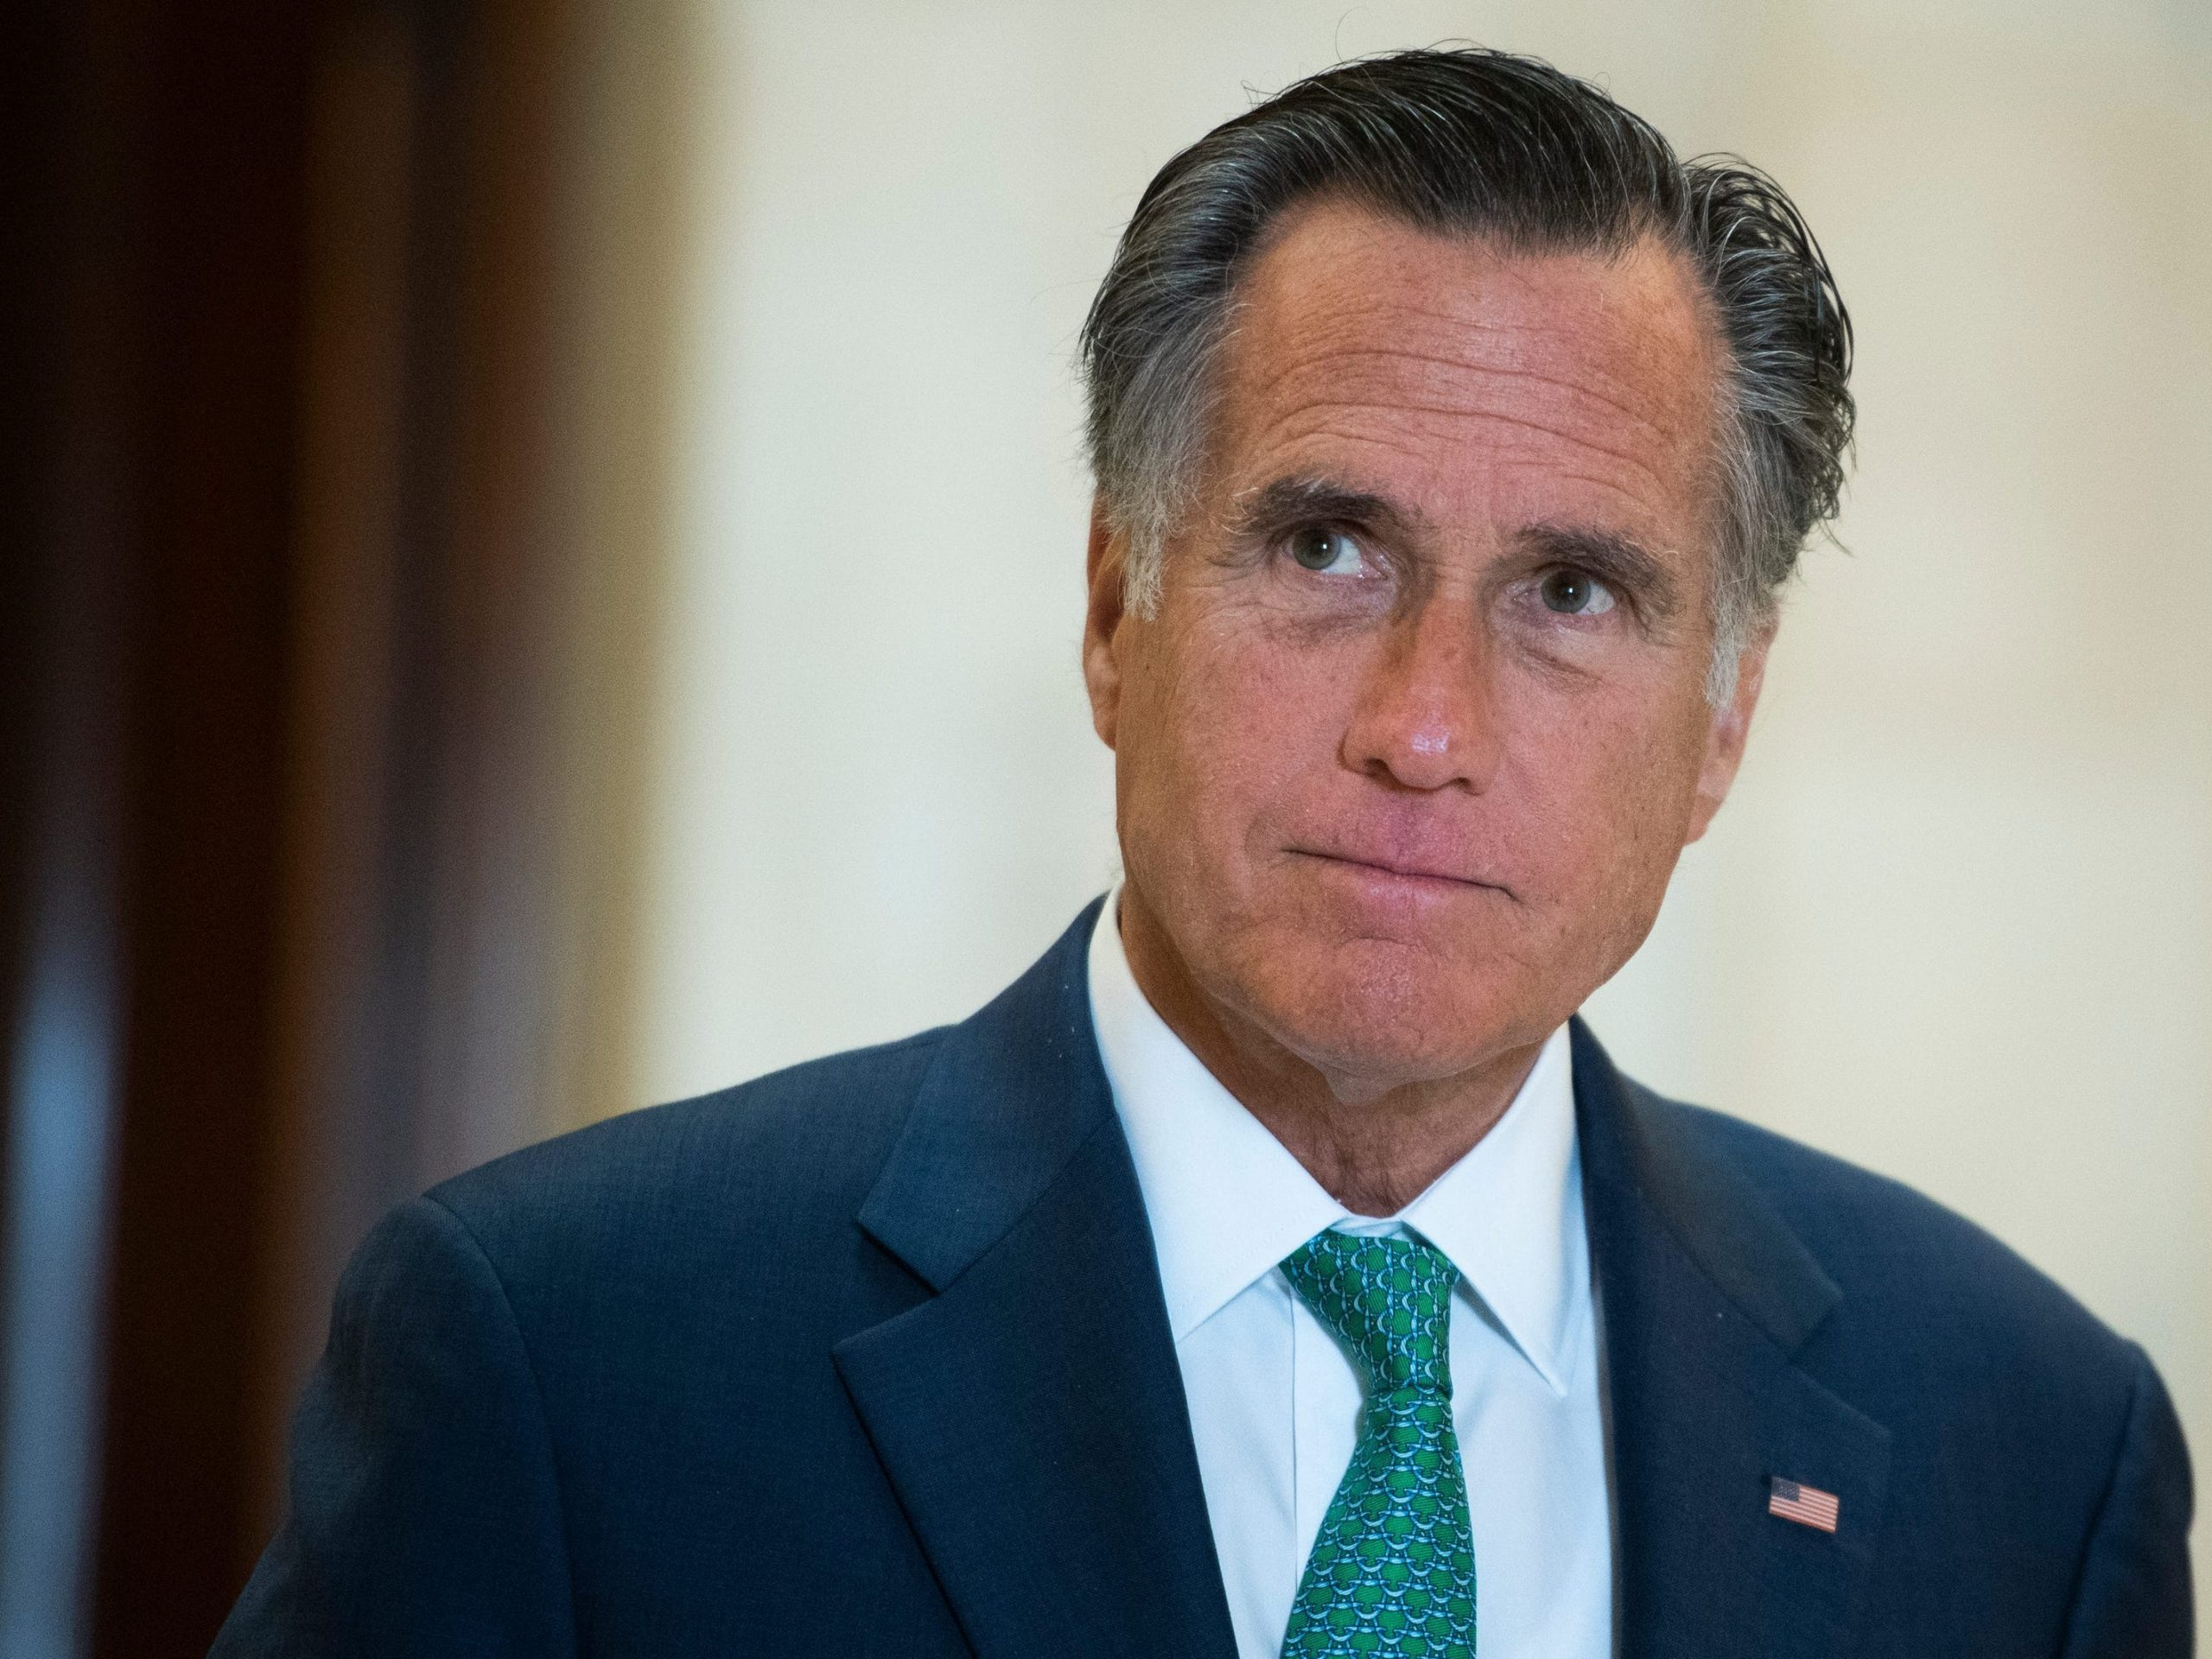 Mitt Romney and other GOP senators voice they're going to oppose an effort by their colleagues to declare the election results